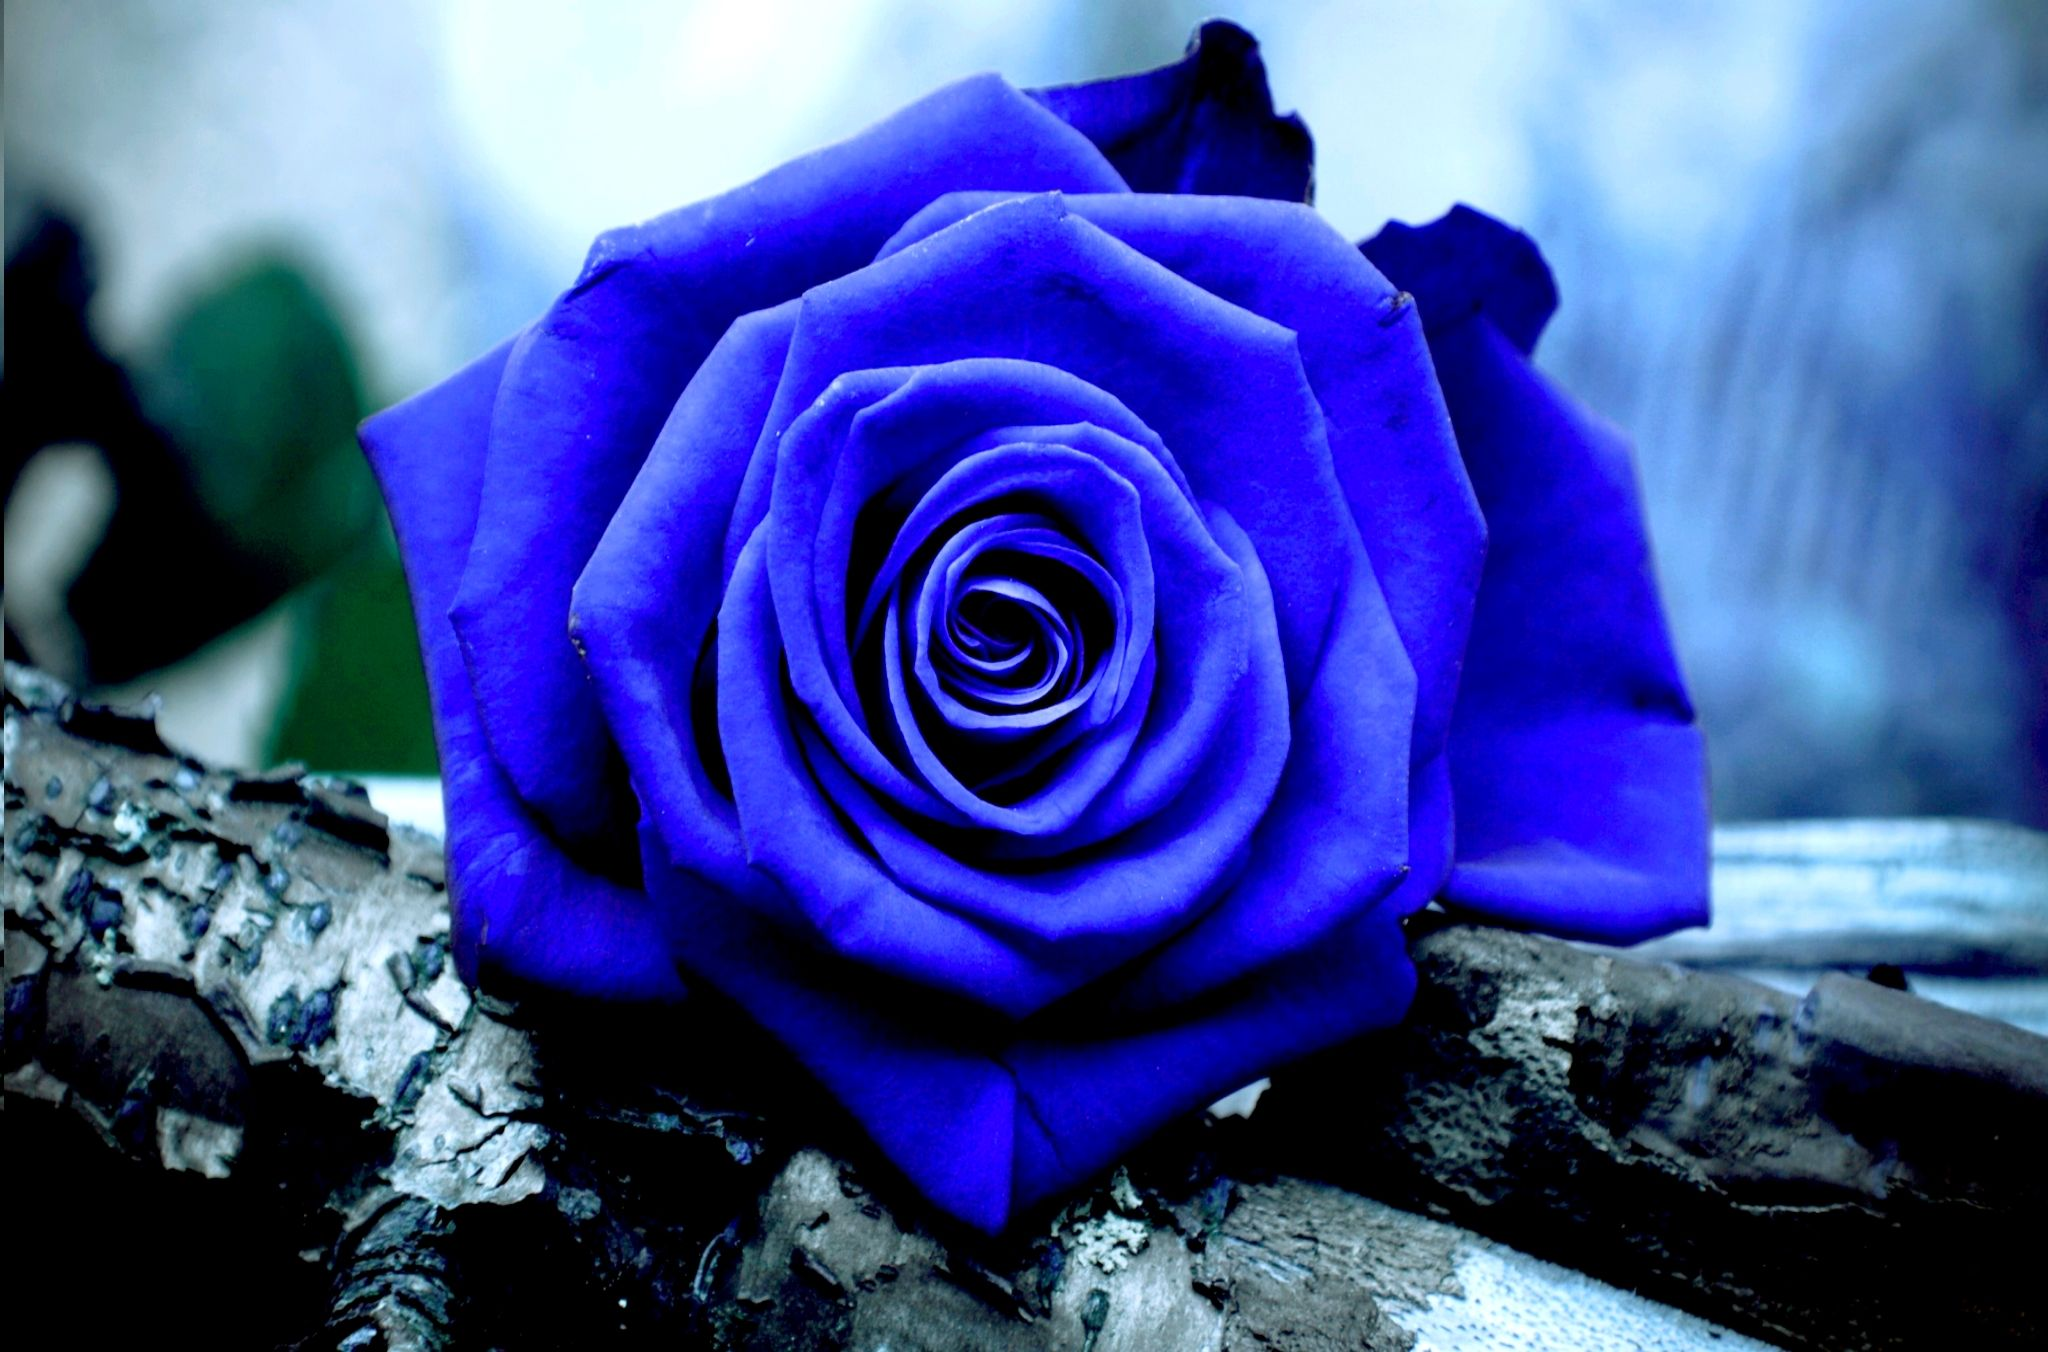 Amazing Blue Rose Wallpaper Free Download Blue Roses Wallpaper Rose Flower Wallpaper Blue Flower Wallpaper